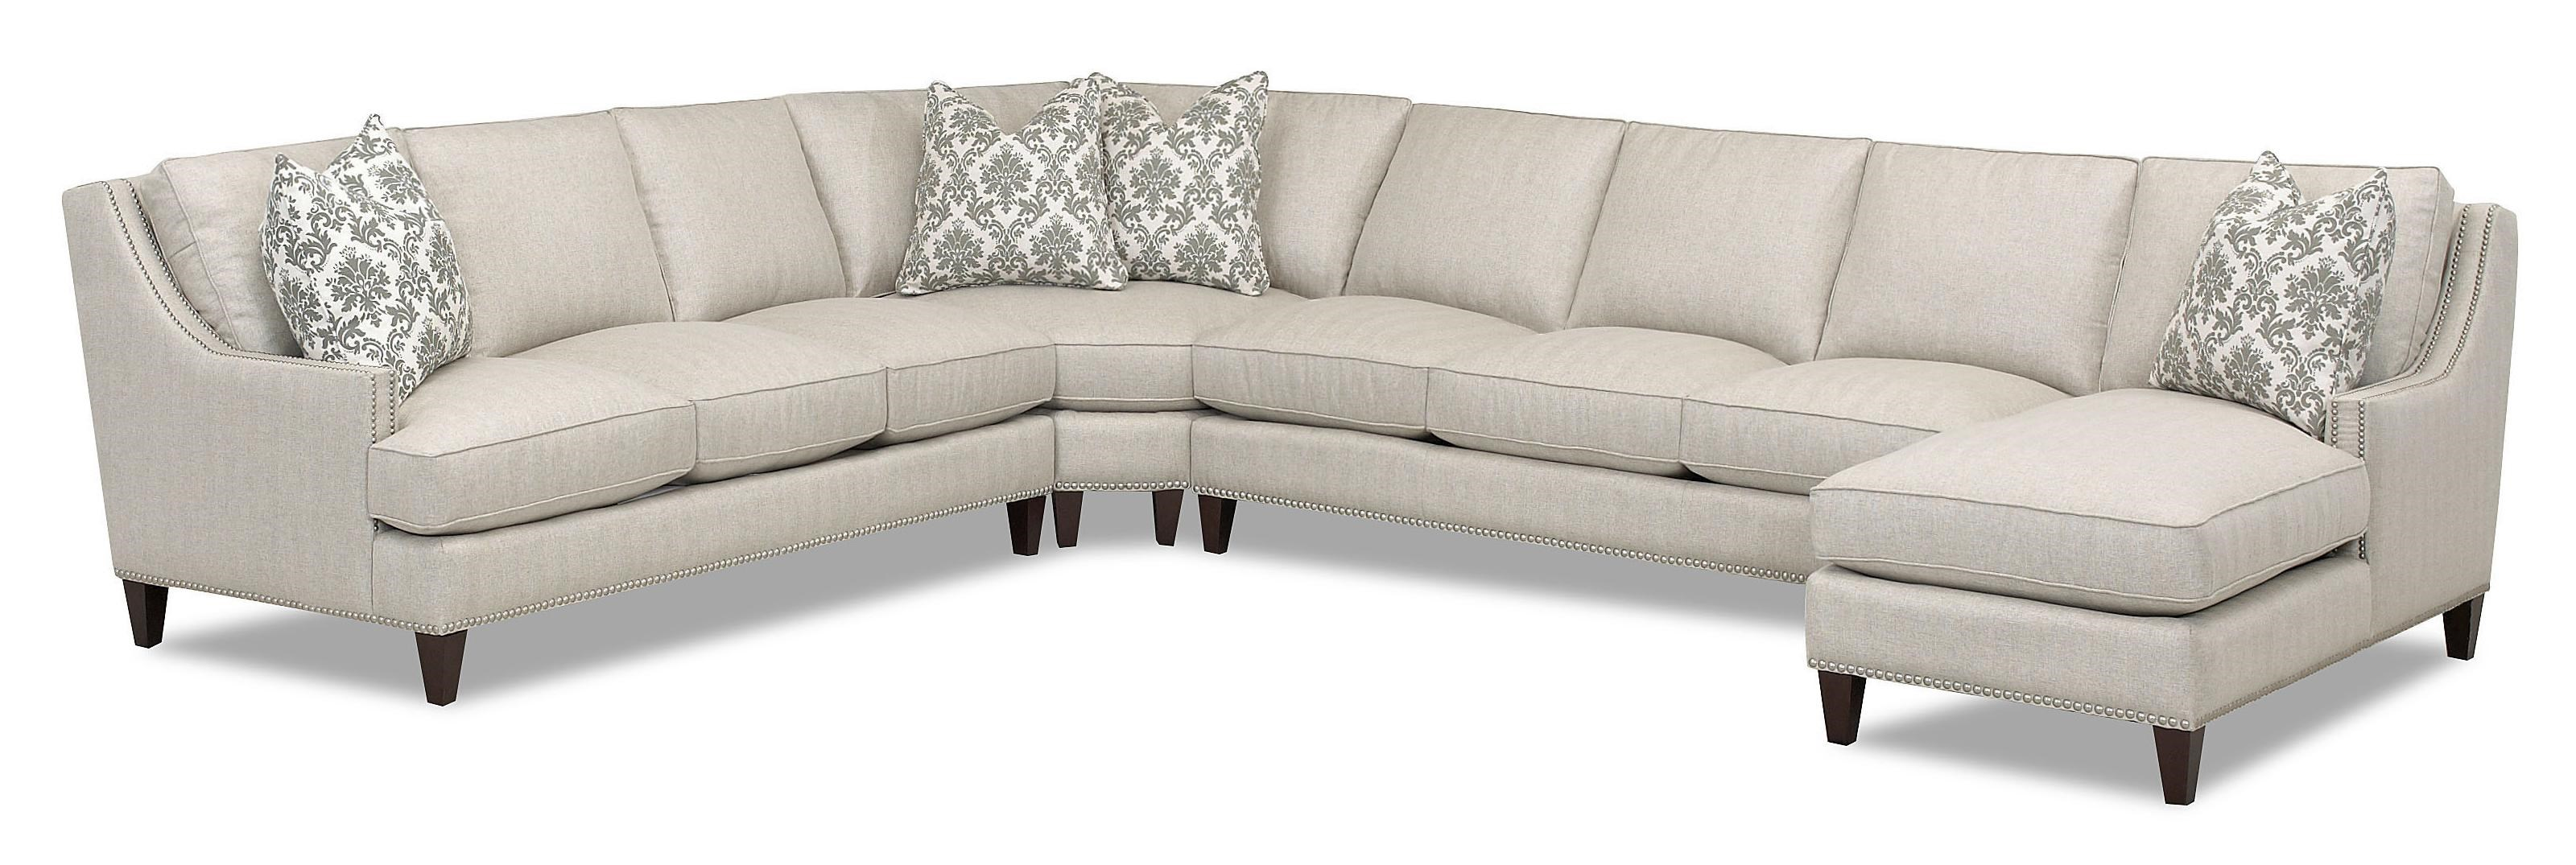 Merveilleux Klaussner Duchess Transitional 4 Piece Sectional With Chaise